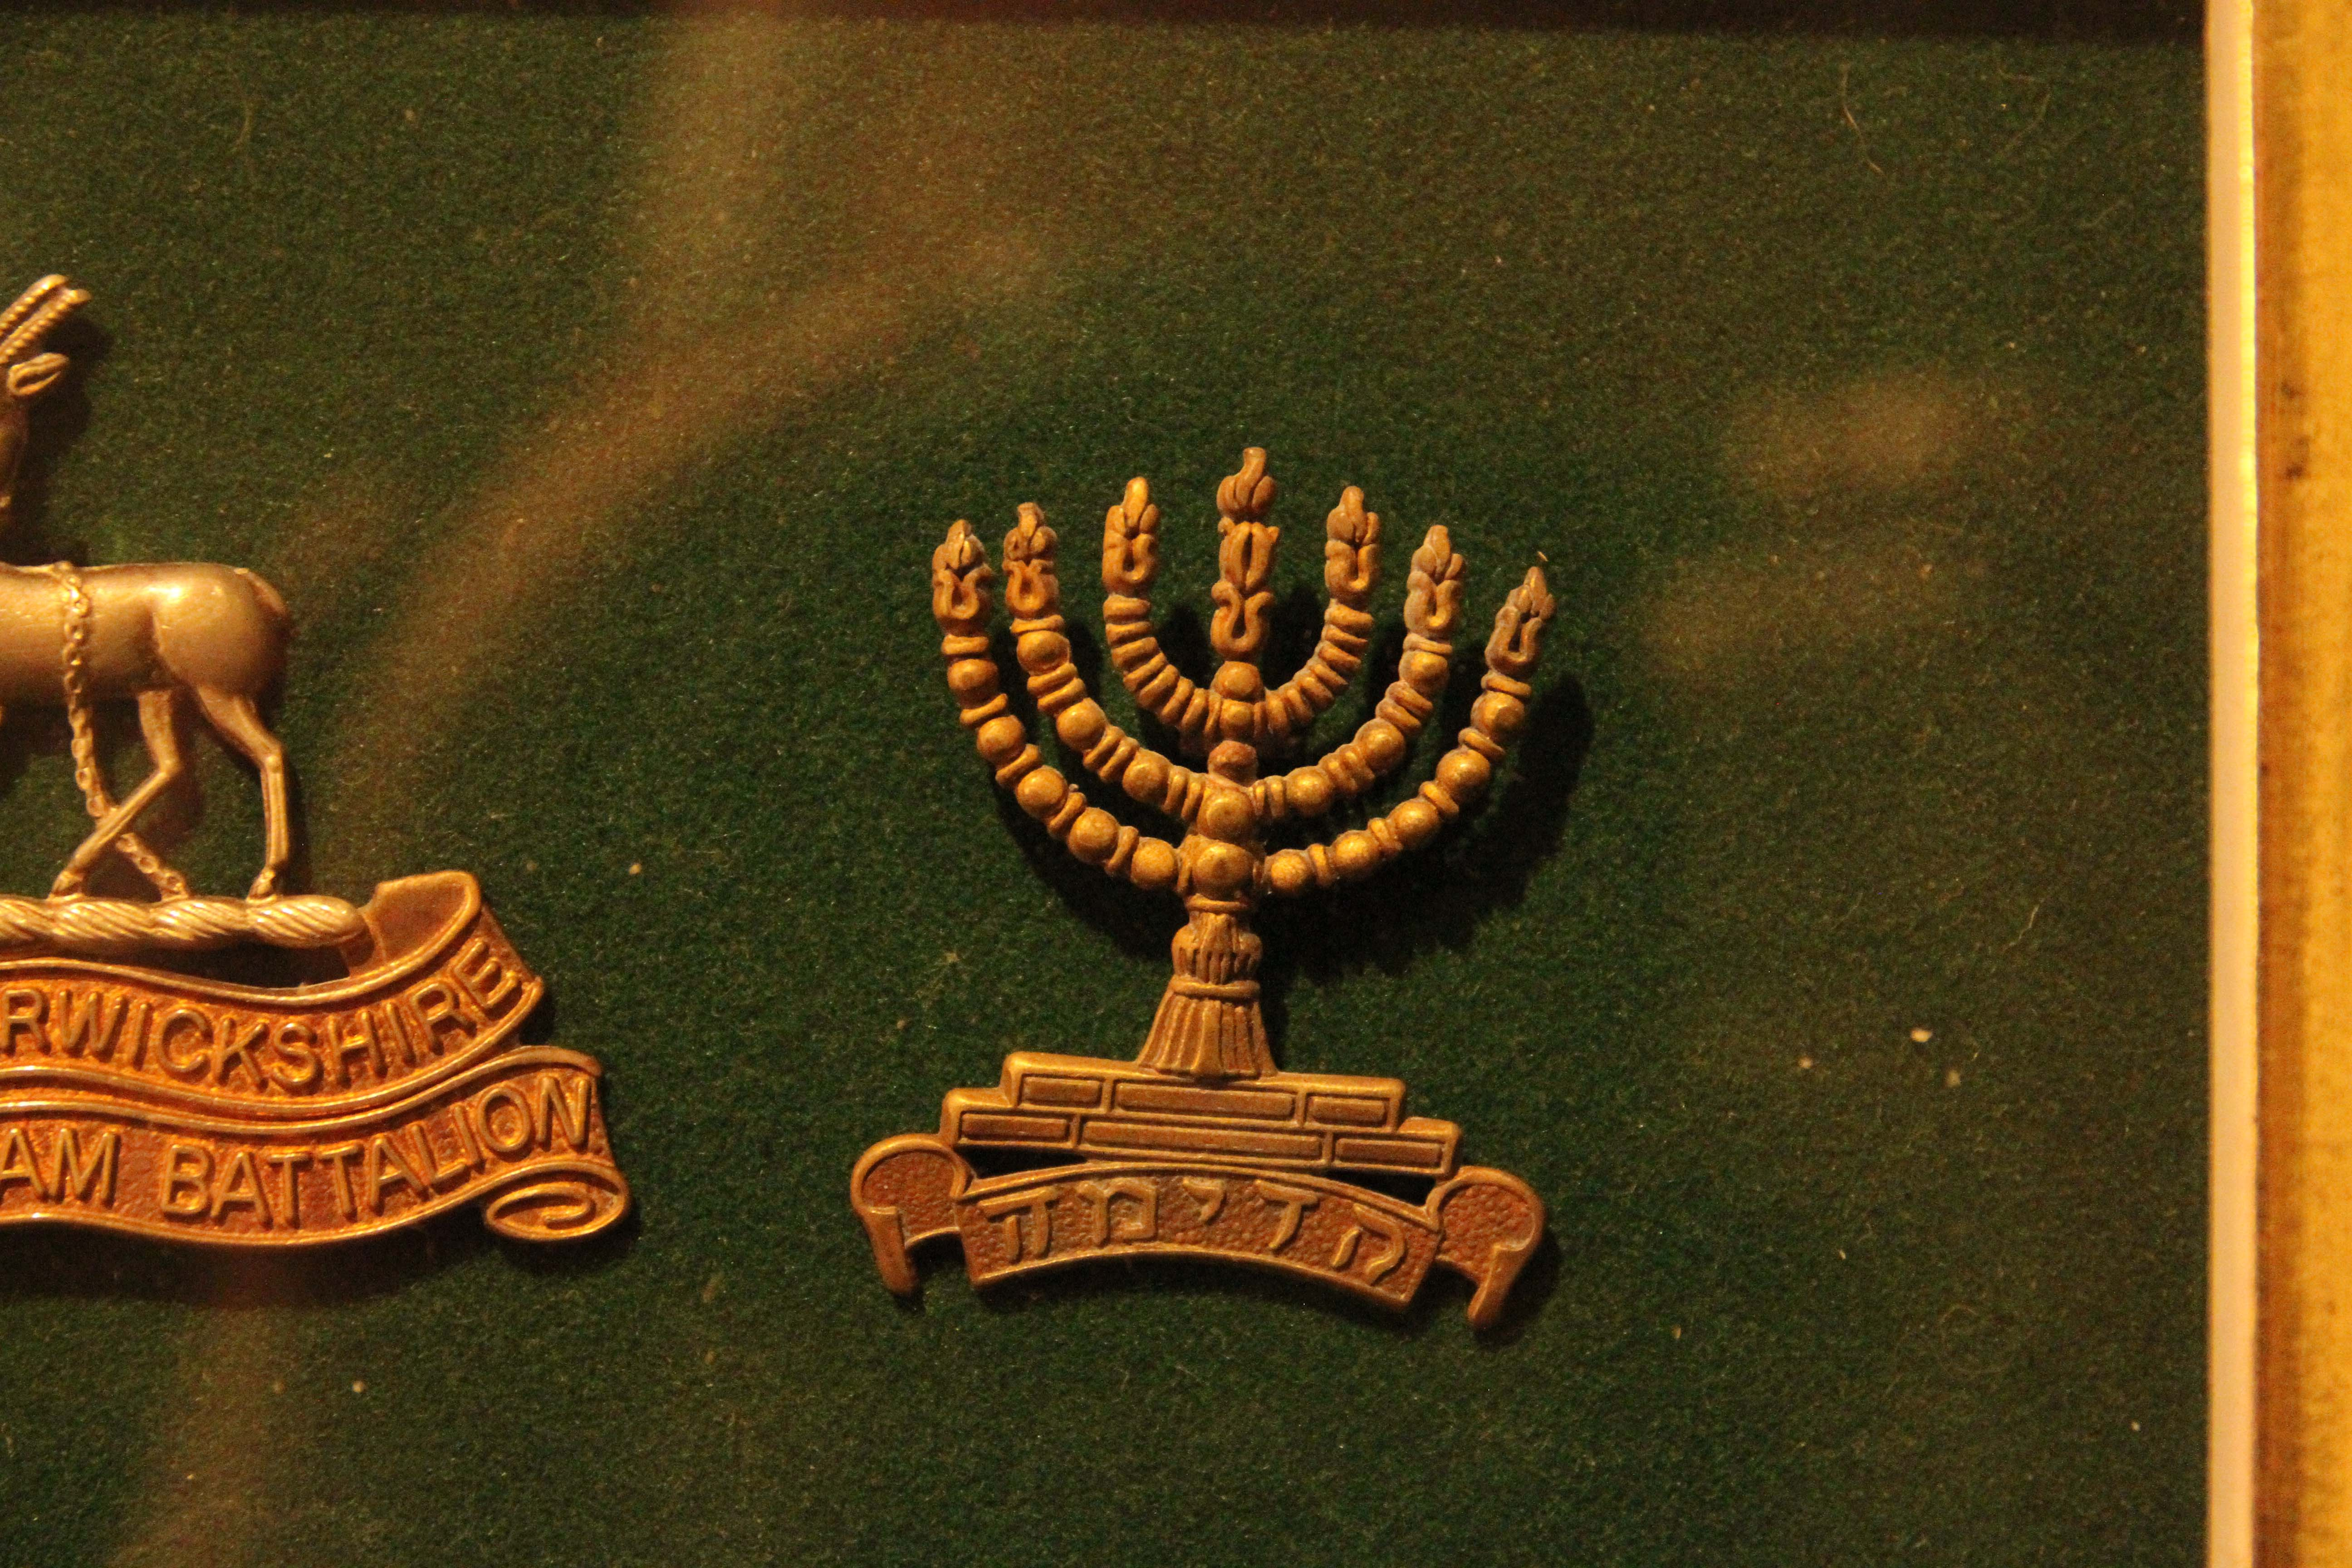 Jewish lapel pin. We Were There Too trip to Ypres, April 2017 By Alan Brill, Voluntary Photographer